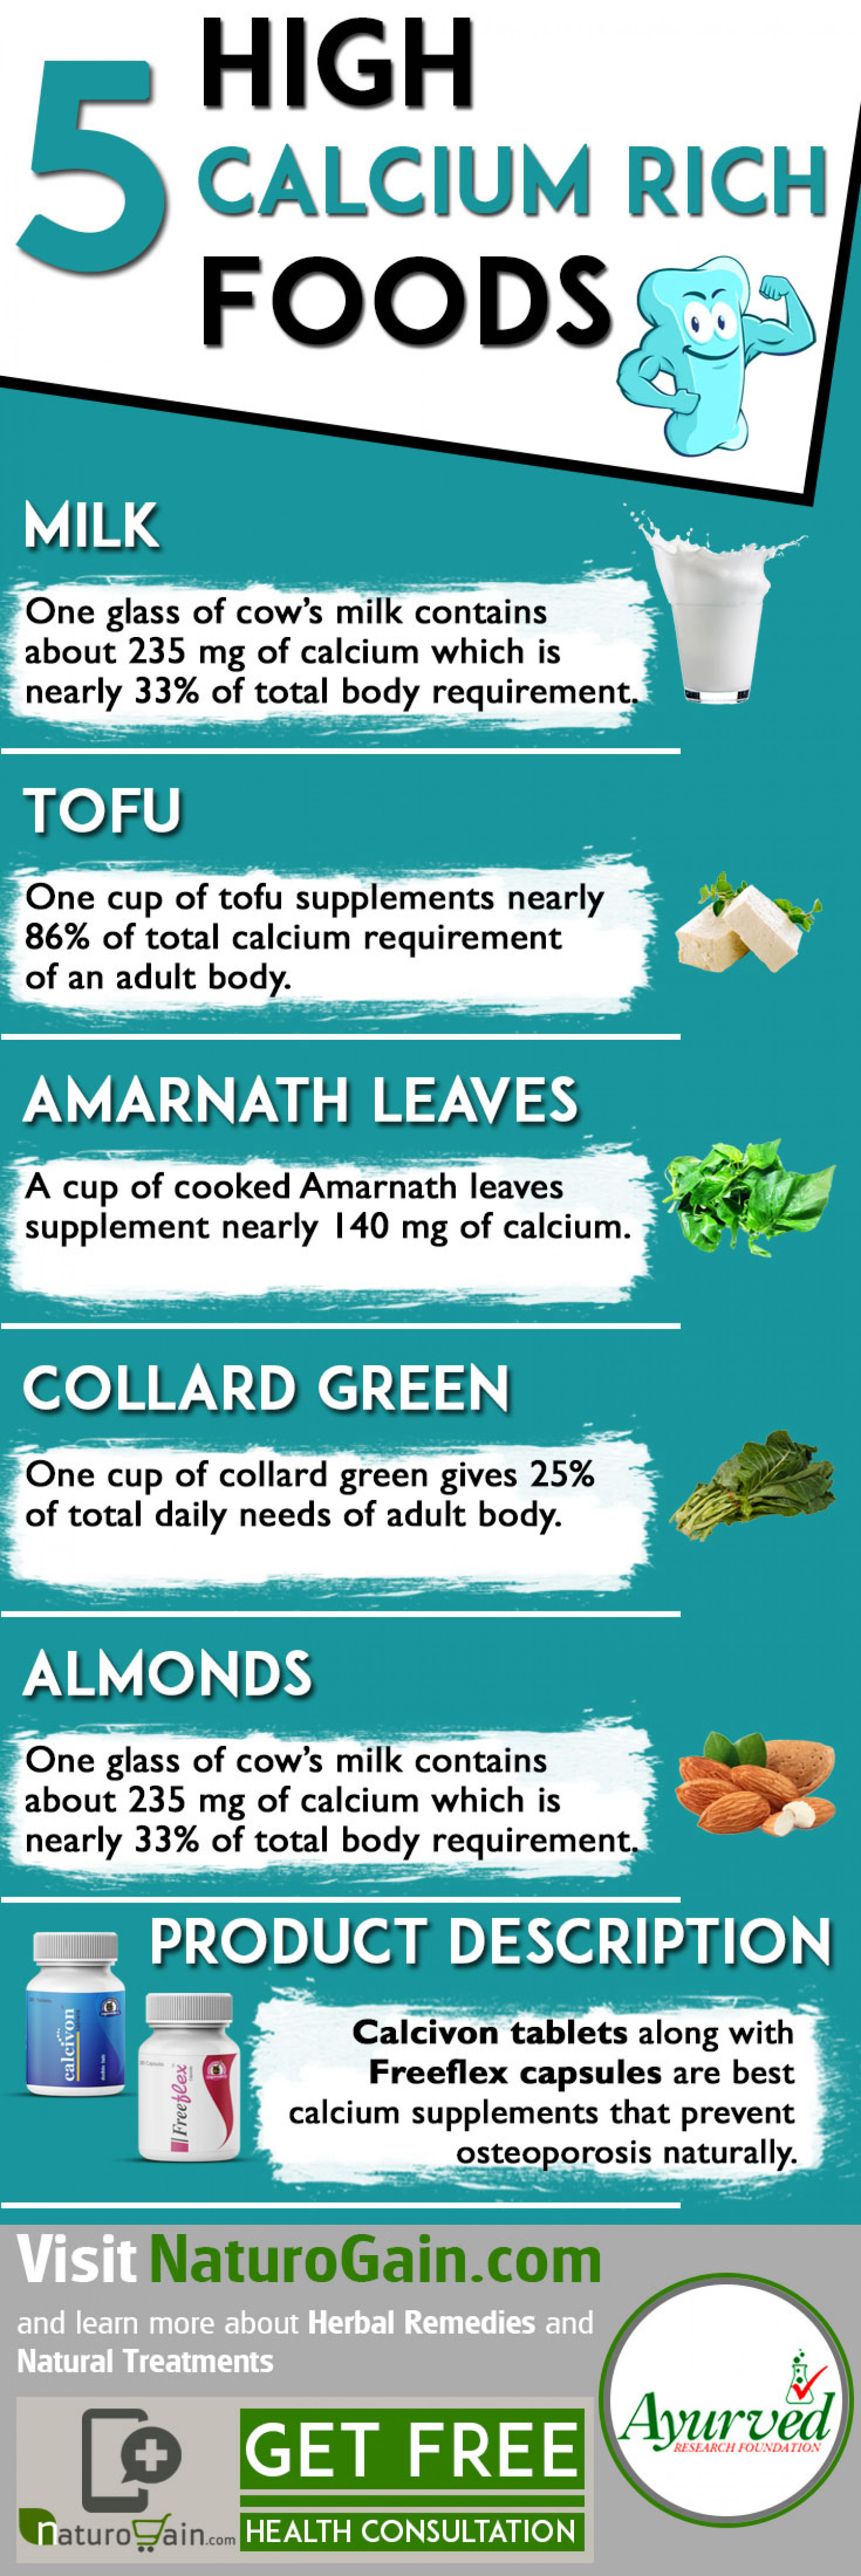 5 High Calcium Rich Foods to Prevent Osteoporosis Infographic